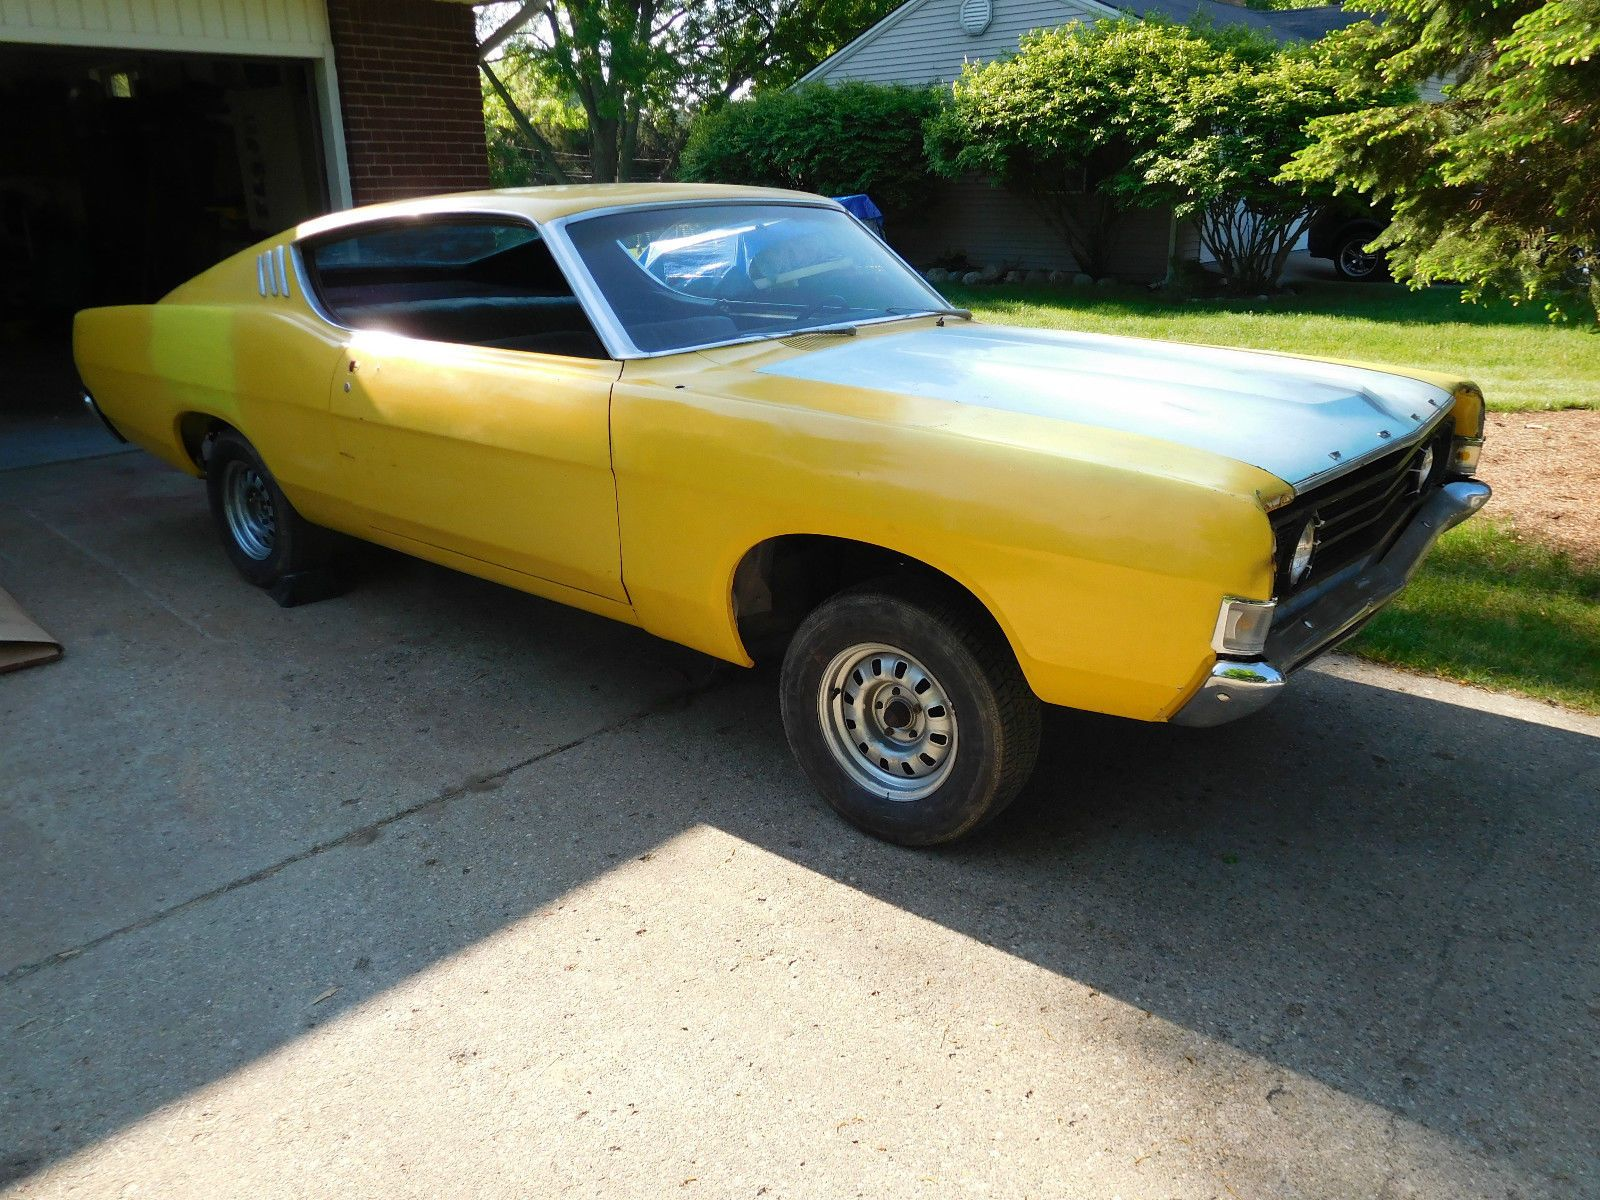 1969 Ford Fairlane Fastback Project Car Maintenance/restoration of ...